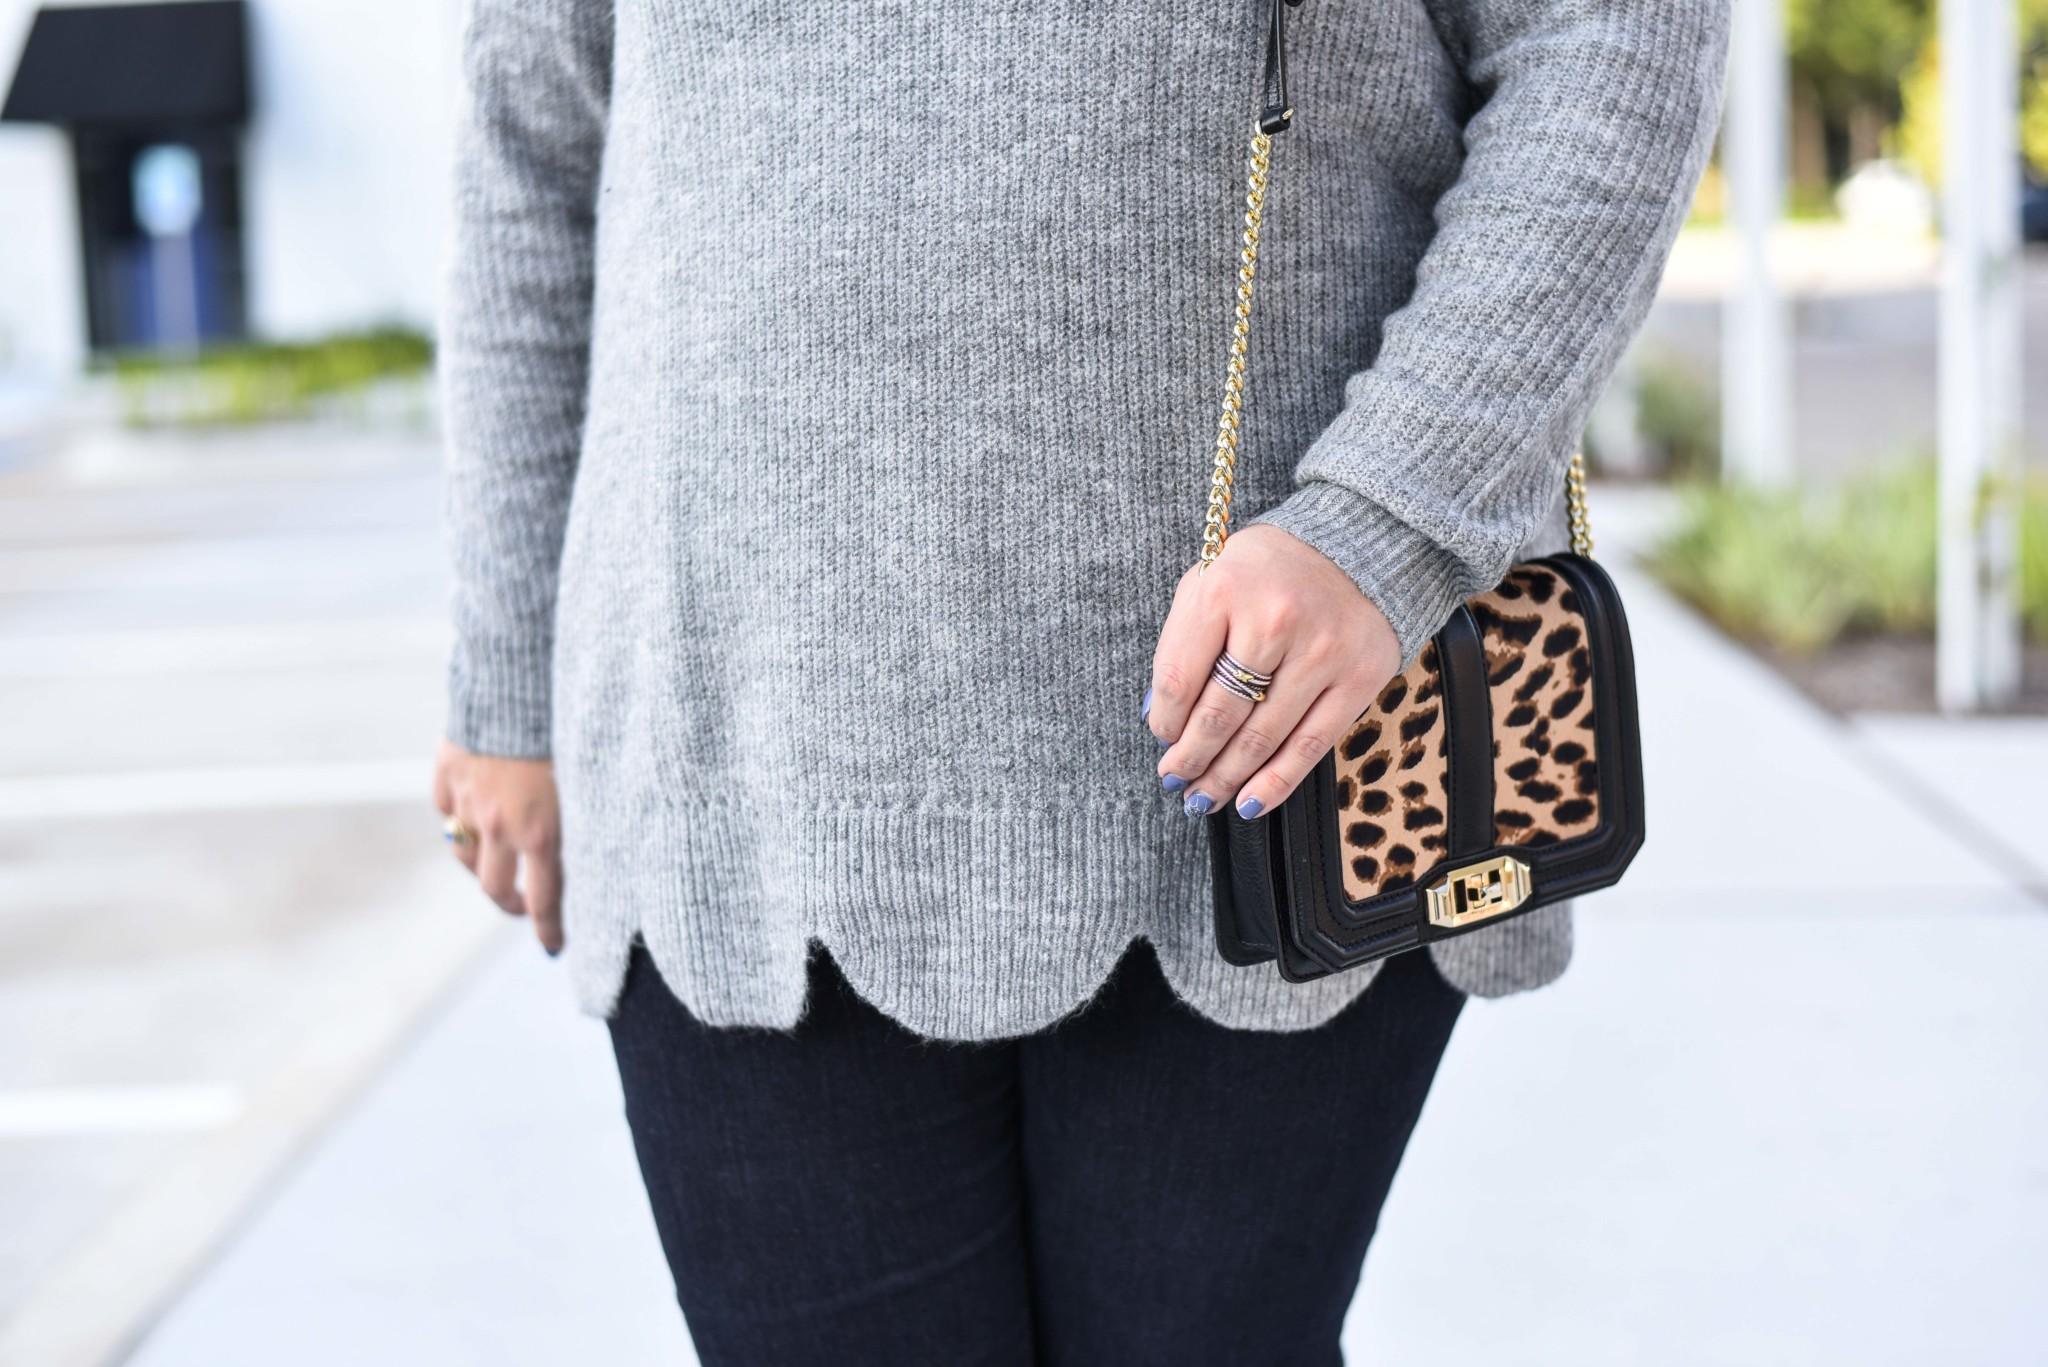 Gorgeous scallop detail on this grey sweater from Lane Bryant